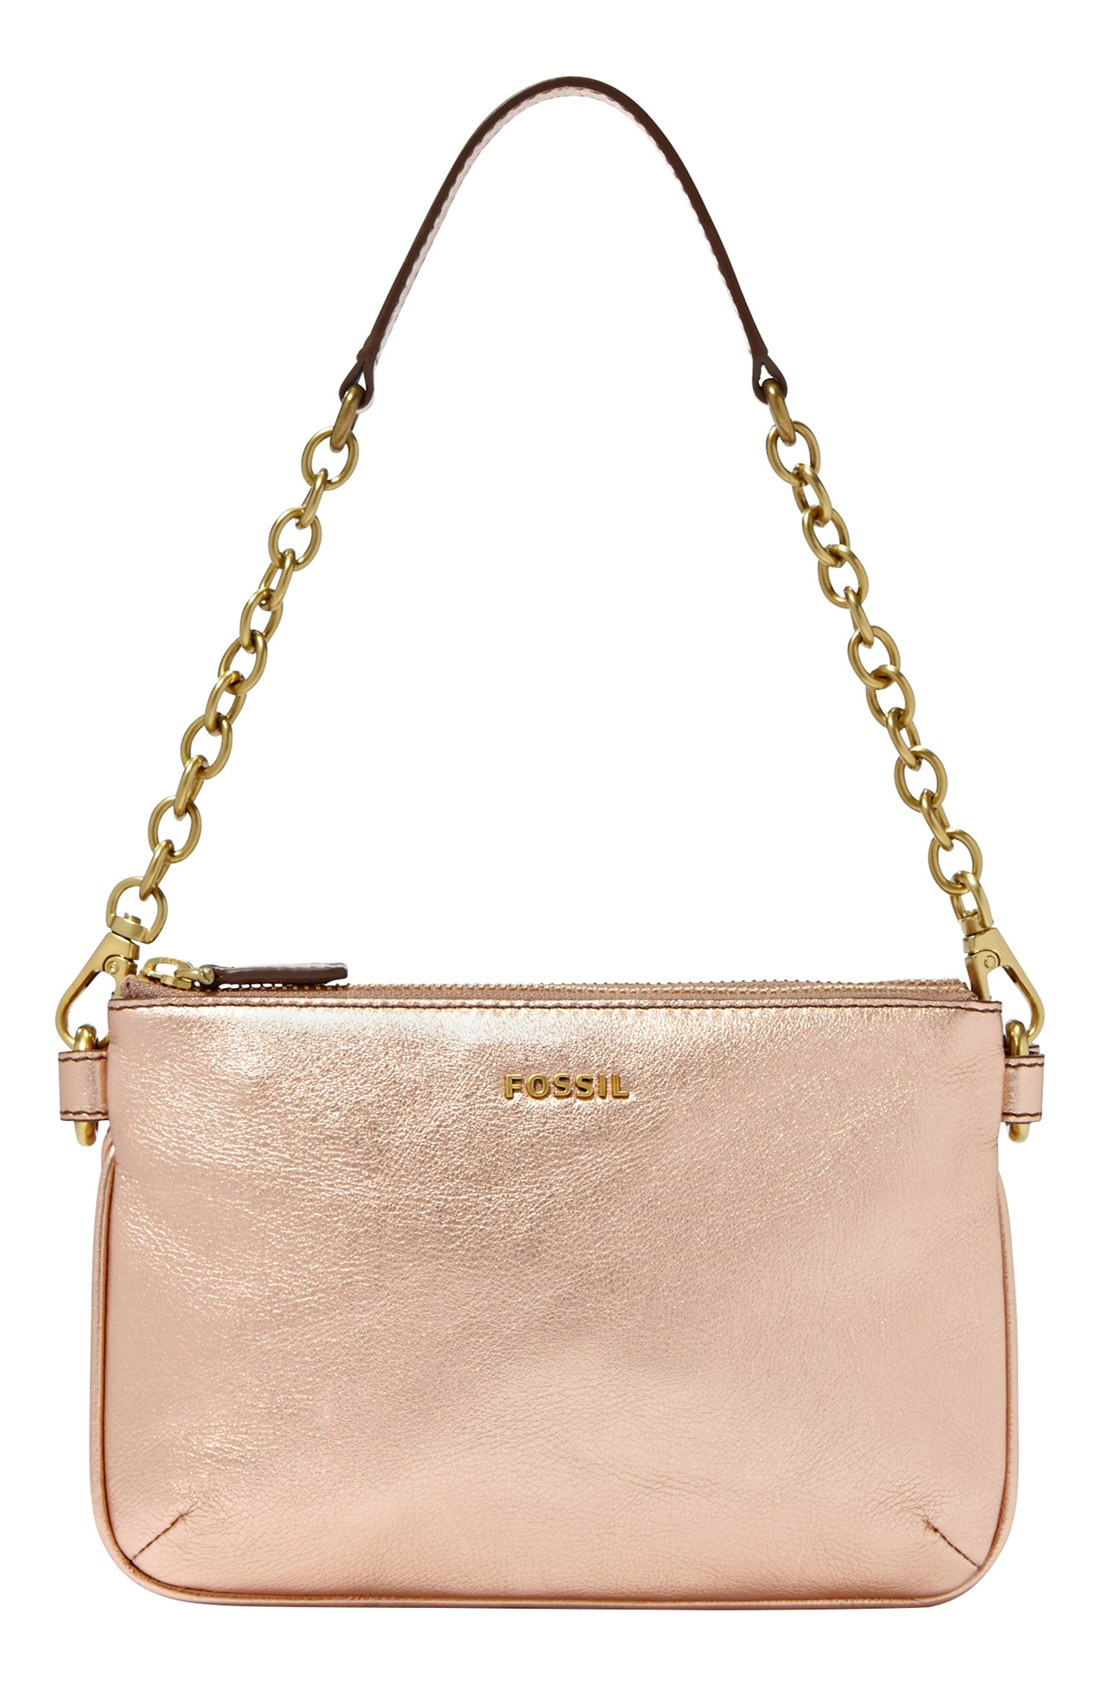 Fossil Memoir Leather Shoulder Bag in Pink | Lyst